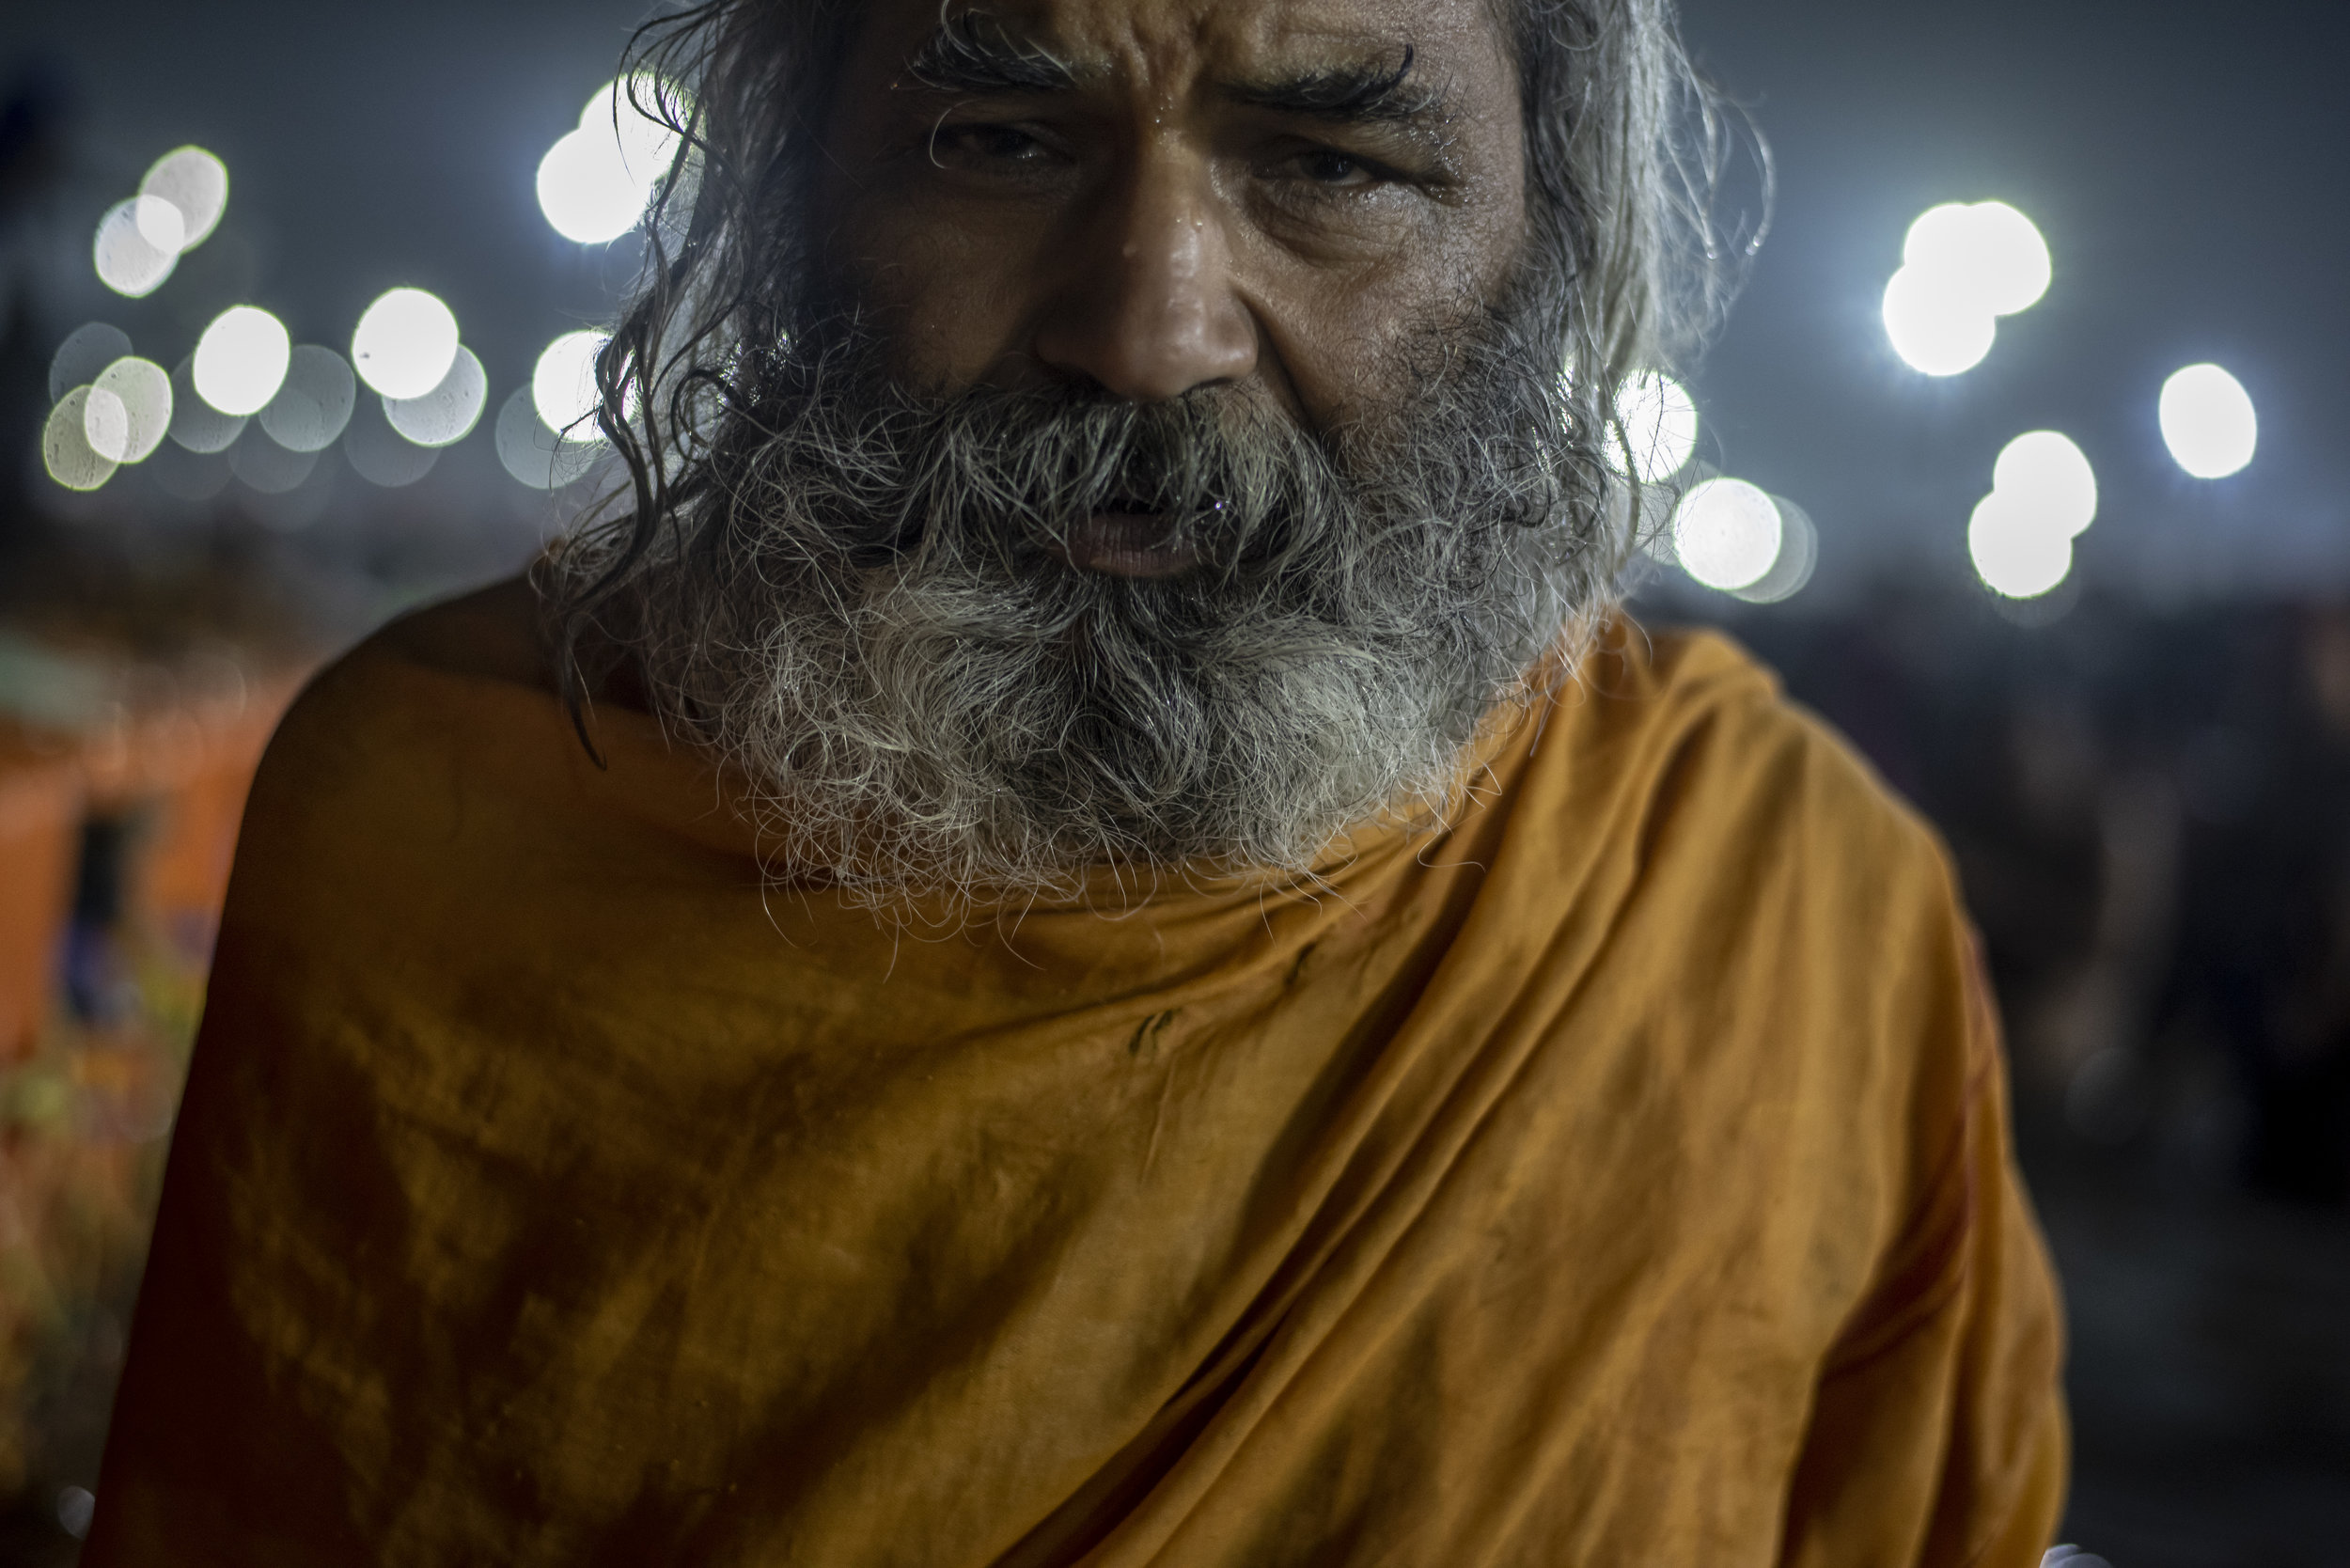 Sadhu stands stoically in the cold waters of the Ganges for almost an hour